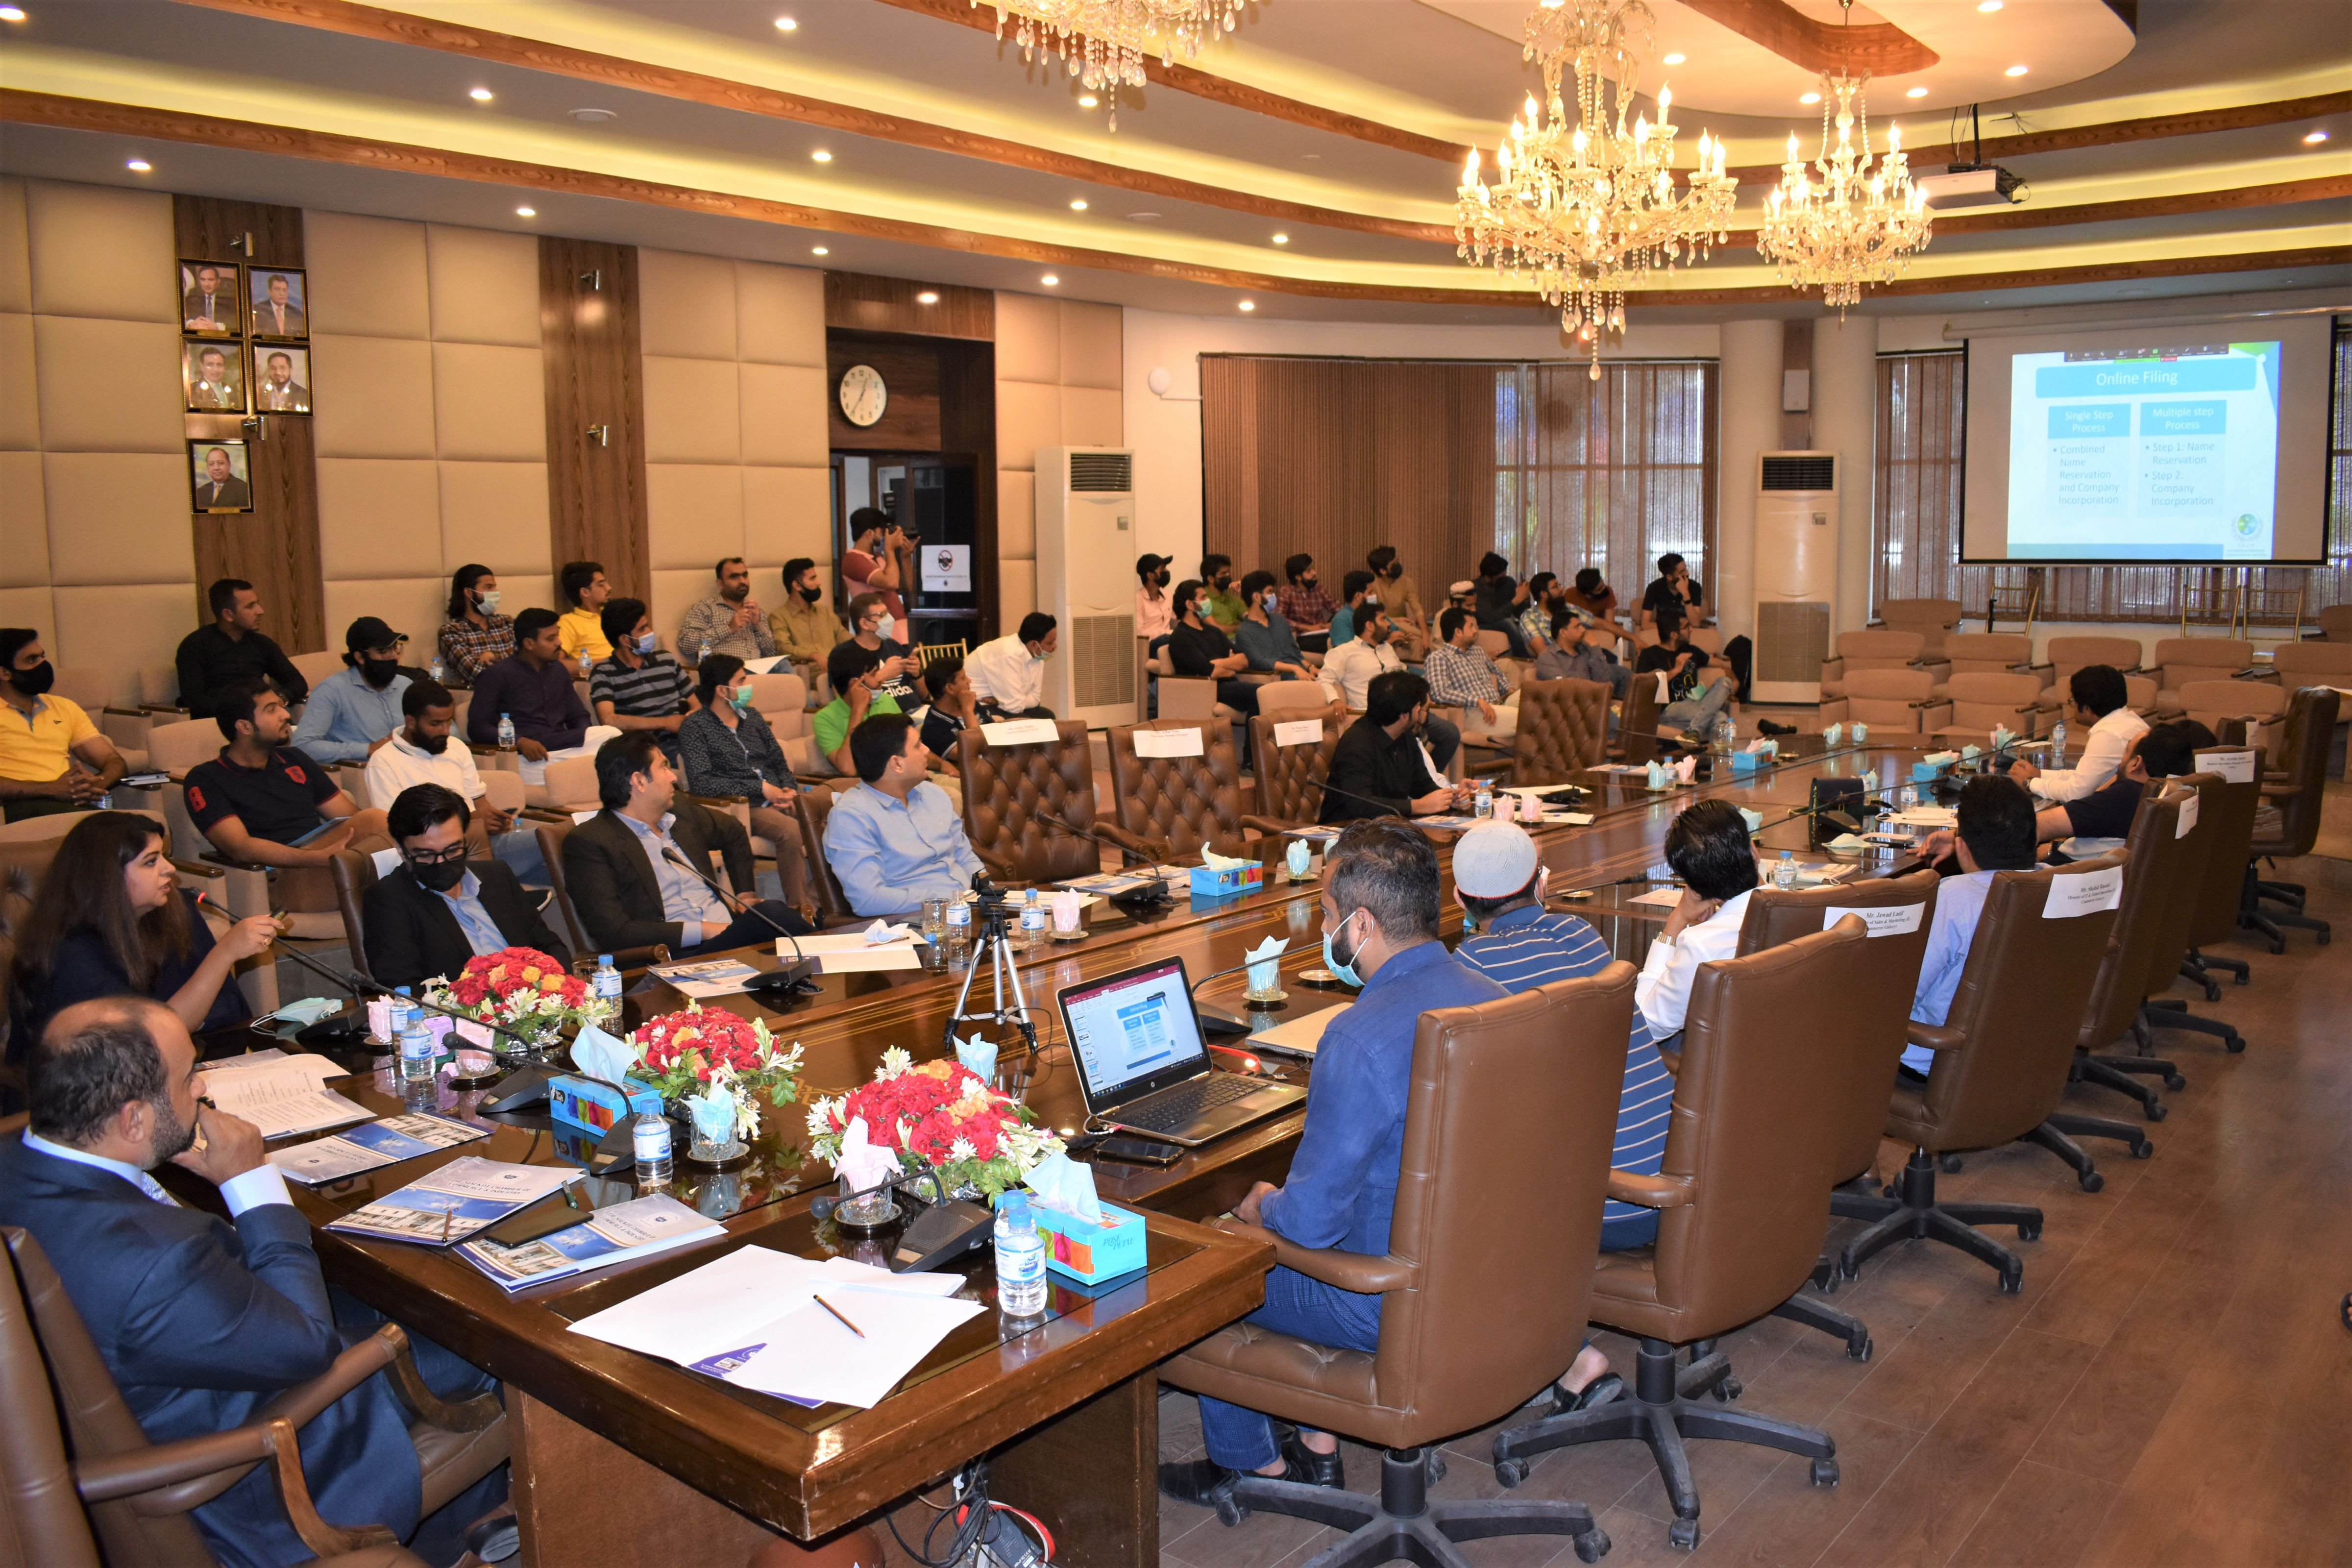 """On July 13, 2021, Sialkot Chamber of Commerce & Industry in collaboration with E-Commerce Galaxy organized an intensive Seminar on """"E-Commerce, Amazon, Payoneer, and usage of SEO Tools"""" to educate the existing as well as new exporters of Industry of Sialkot regarding the dynamics of selling their products on E-Commerce platforms mainly Amazon, Ebay. Mr. Qaisar Iqbal Baryar appreciated the efforts of Ms. Aisha Moriani and her team for working in getting Made in Sialkot products recognized on Amazon. An (MOU) was also signed between SCCI and E-commerce Galaxy for future collaborations. Mr. Khuram Aslam, Senior Vice President, SCCI also graced the event. Ms. Azka Ameen, Assitant Registrar SECP gave an introductory presentation regarding company incorporation with SECP using online portal. Team E-commerce Galaxy gave a detailed presentation on various aspects of working on Amazon for SME.  Ms. Affaf Noor, Partnerships Manager Payoneer explained the audience about the payment gateway and integration with various ecommerce and freelancing platforms.  Ms Ayesha Moriani, Senior Joint Secretary, Ministry of Commerce, Dr Shahzad Yousaf, City of London College, Mr. Urfan Yaqub, Co Founder & Director E-Commerce Galaxy and his whole team, Mr. Kumail Nadeem, Deputy Registrar SECP. Mr. Mohsin Muzafar, Country Head Payoneer & his team and Mr. Hassan Shah, Cordinator Ministry of Commerce's Think Tank on Amazon and representatives from Punjab Information Technology Board (PITB) briefed the audience  regarding various dynamics of E-Commerce and Issues faced by sellers during account creation and product listing were also discussed and relevant solutions were advised through Q/A session. The Seminar was broadcasted live on Facebook and Zoom apart from being arranged at the Sialkot Chamber."""